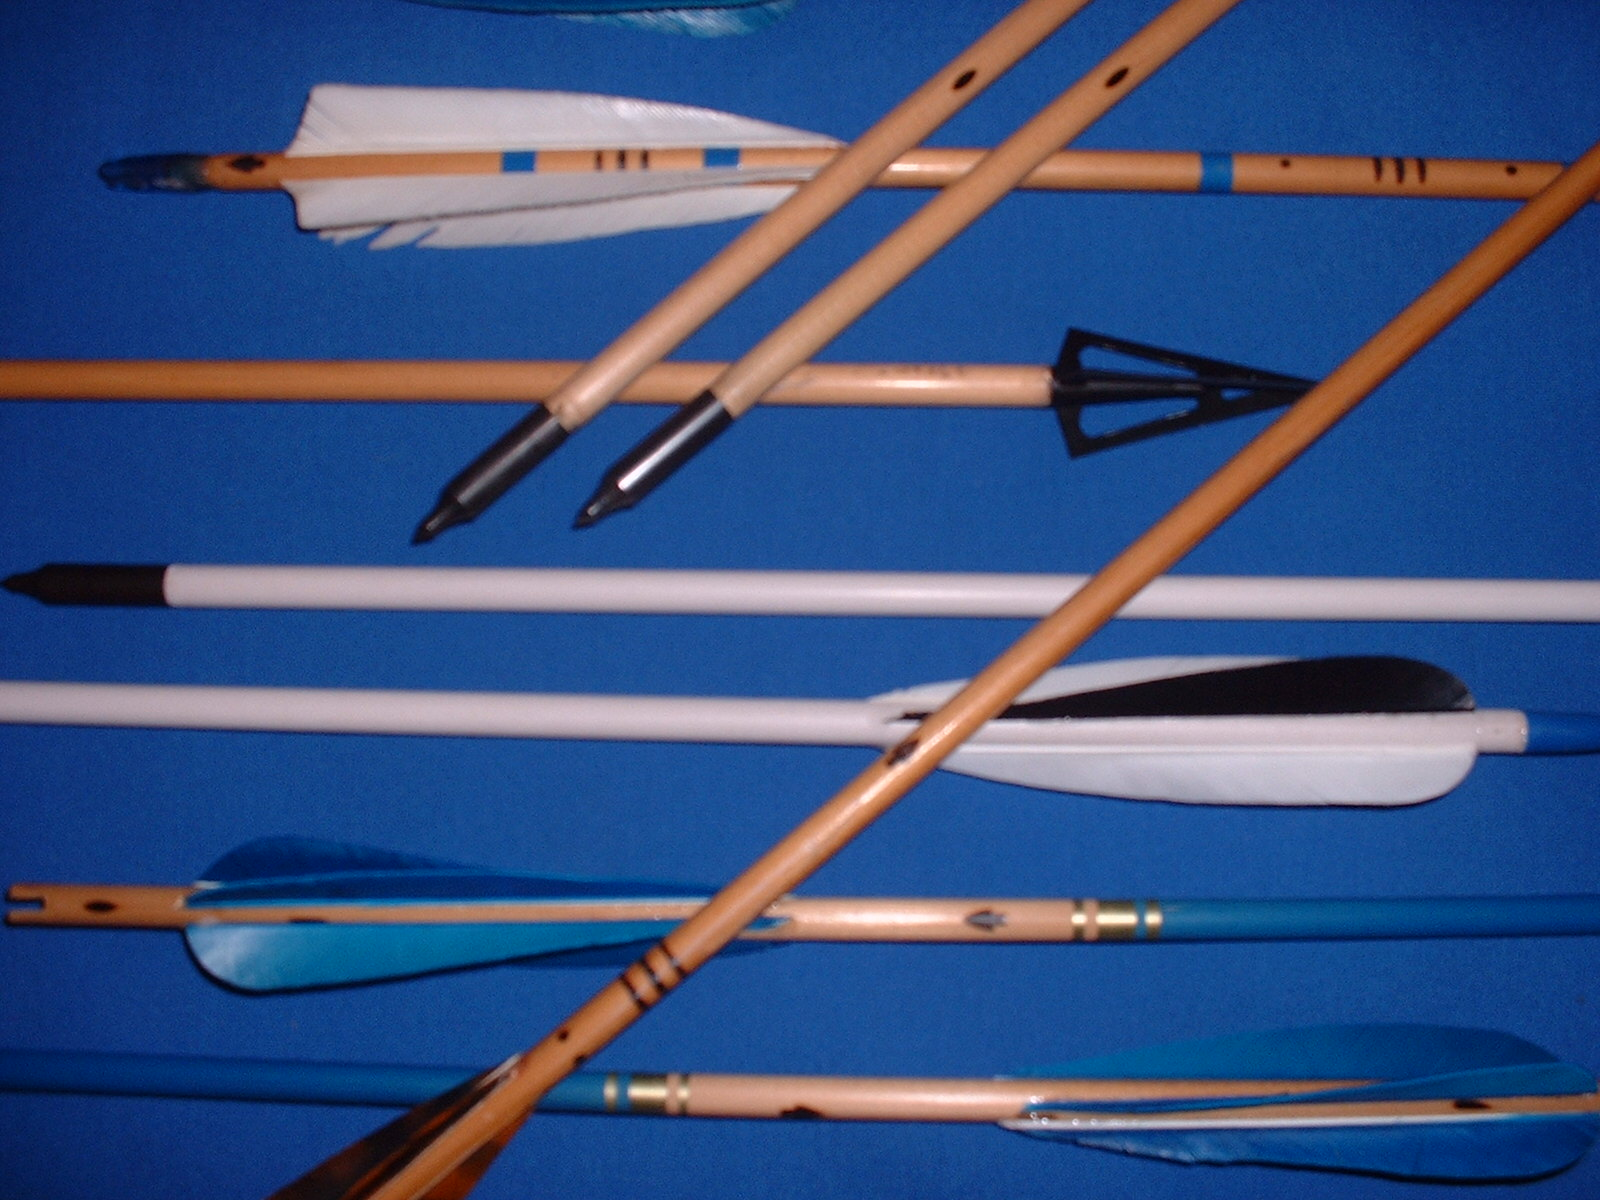 Fall Wooden Wallpaper Traditional Archery Equipment Hand Made Wooden Arrows And